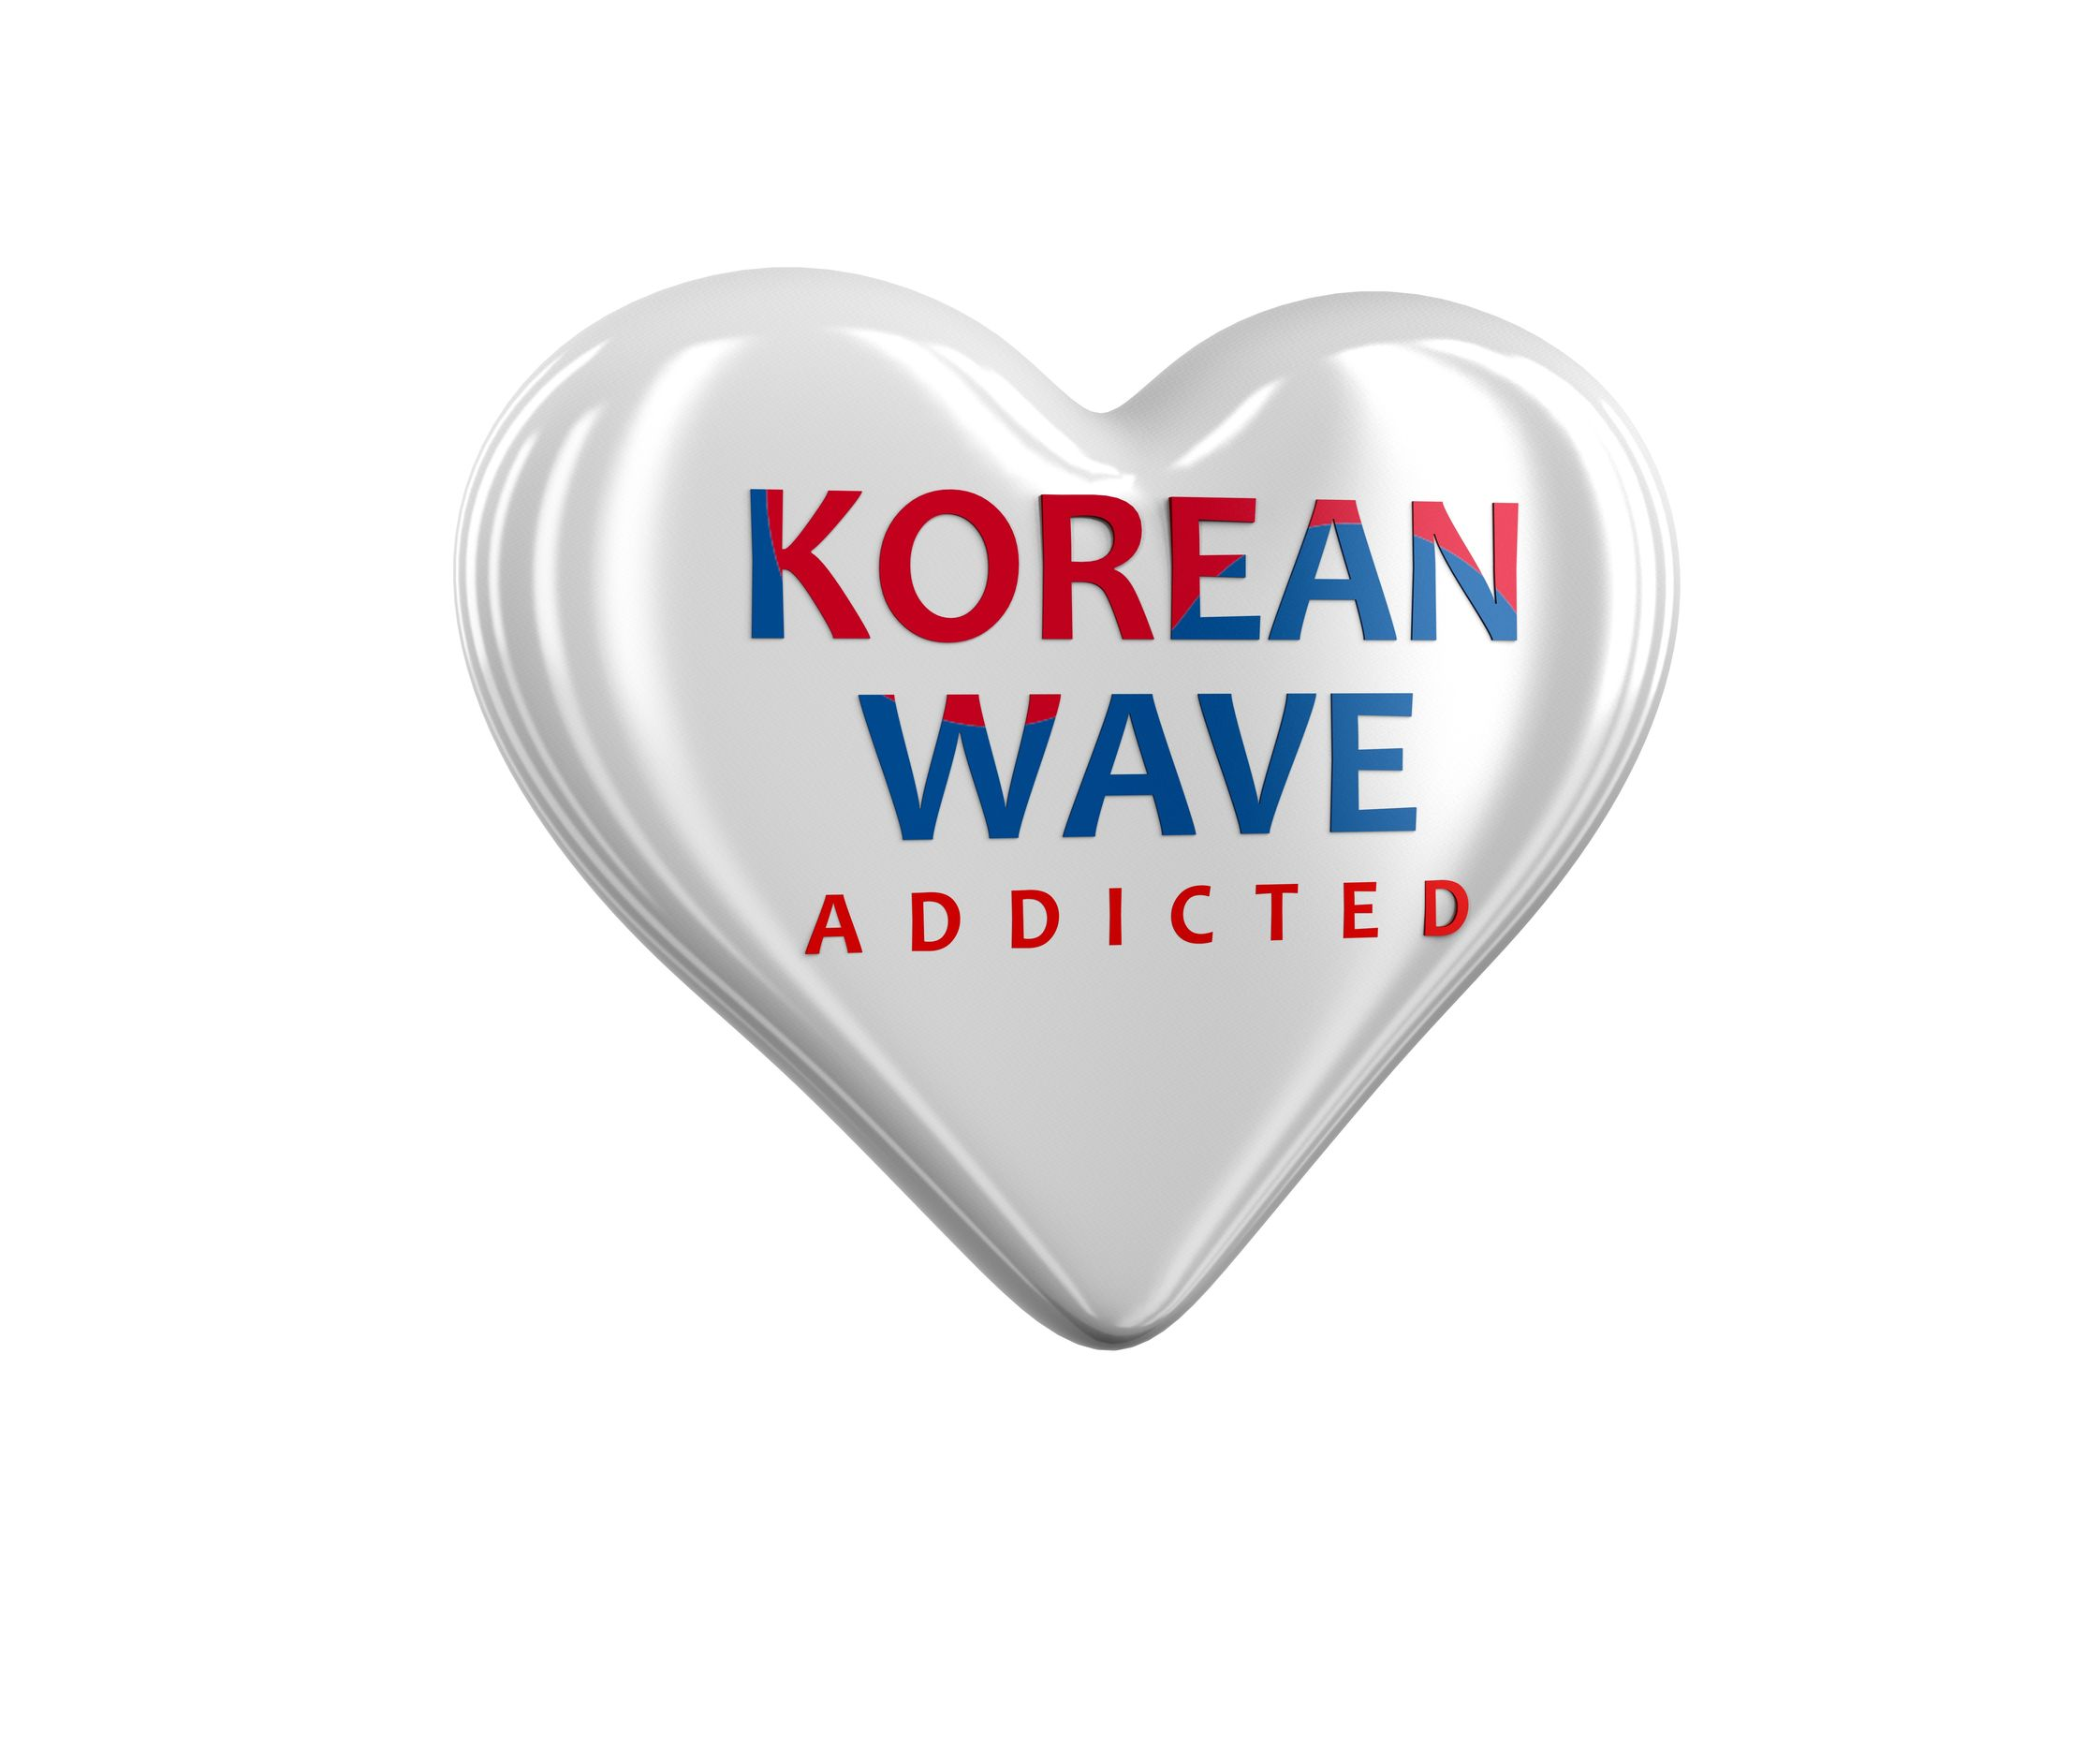 korean wave addicted printed on a silver heart